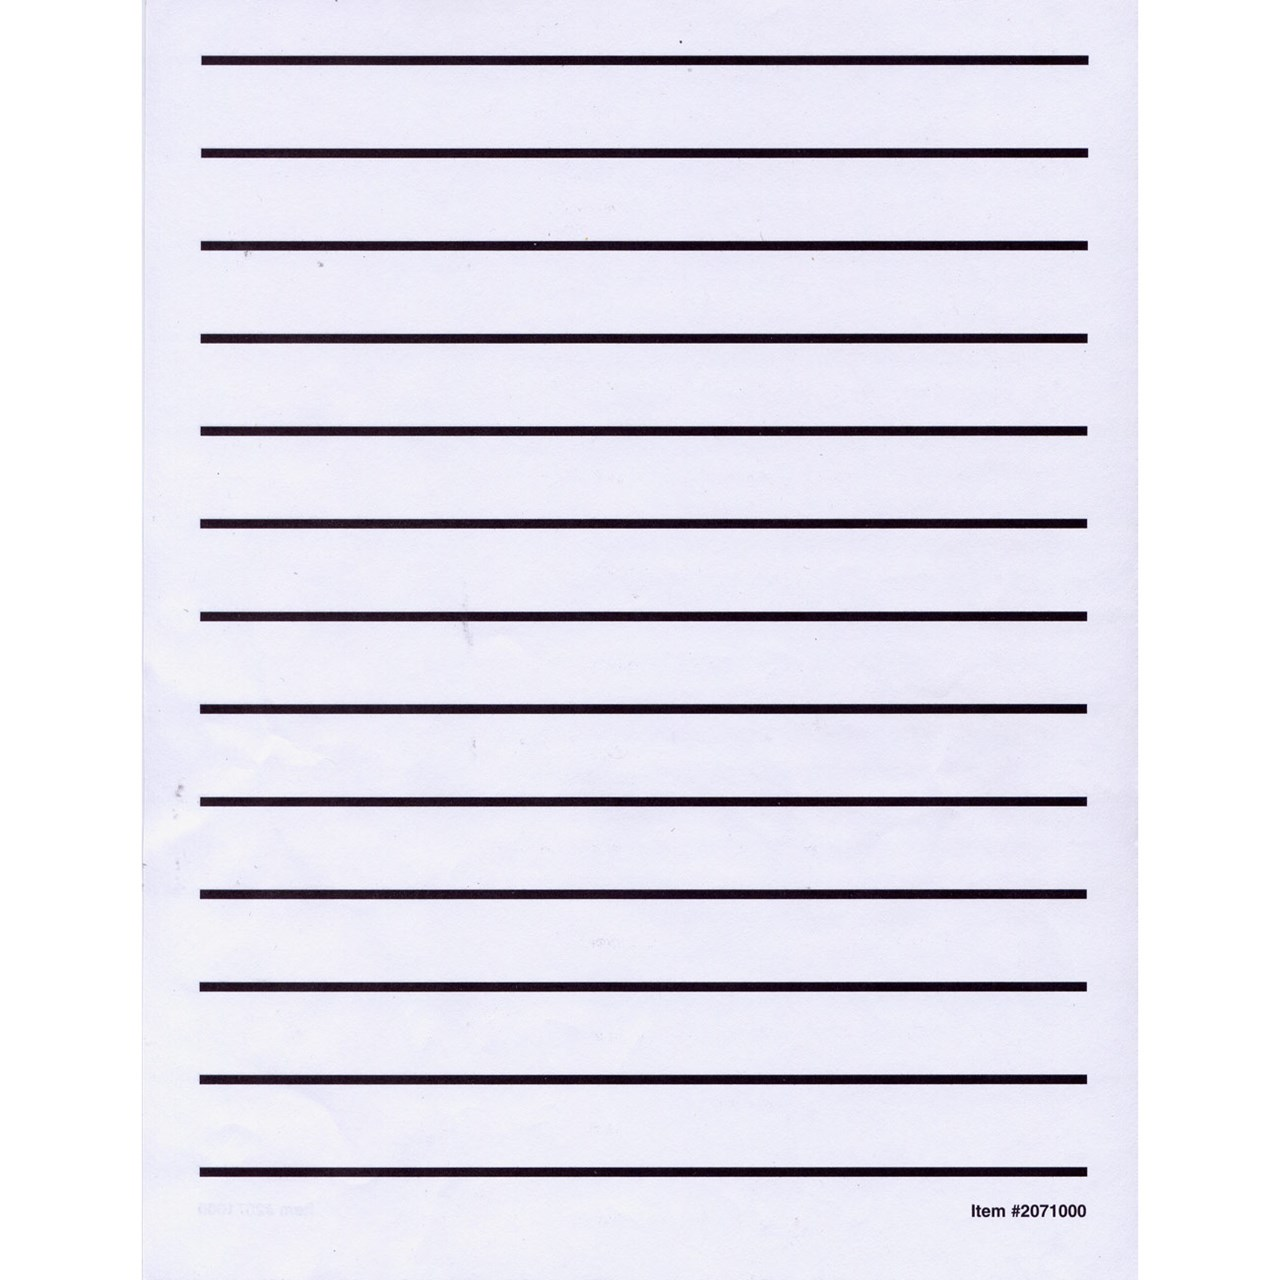 Maxiaids Low Vision Writing Paper